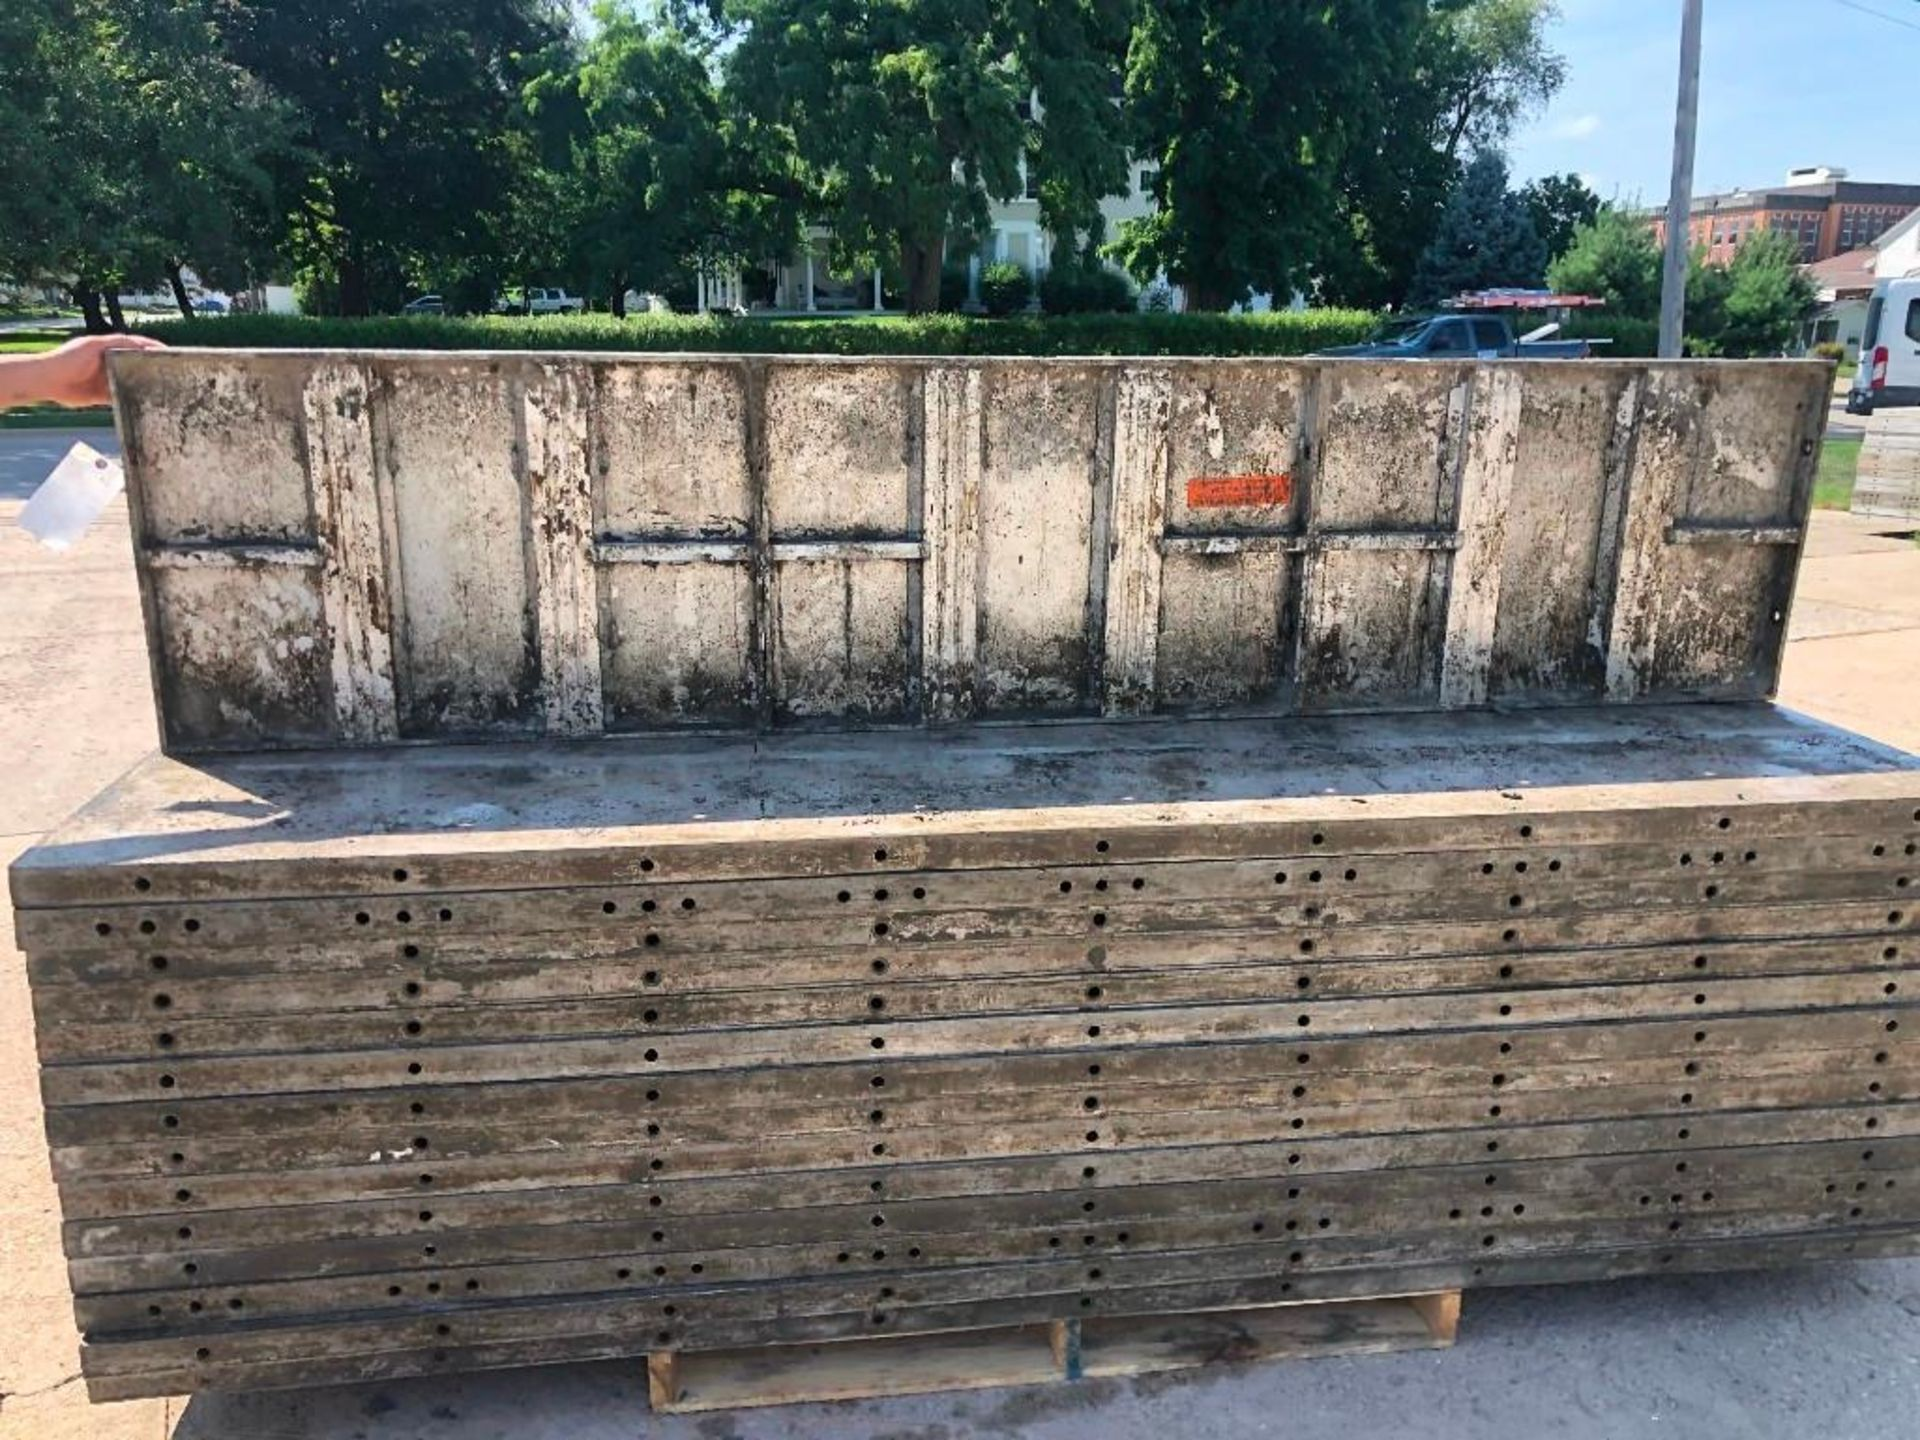 Lot 139 - (30) 2' x 9' Wall-Ties Aluminum Concrete Forms, Laydowns, Smooth 6-12 Hole Pattern. Located at 301 E